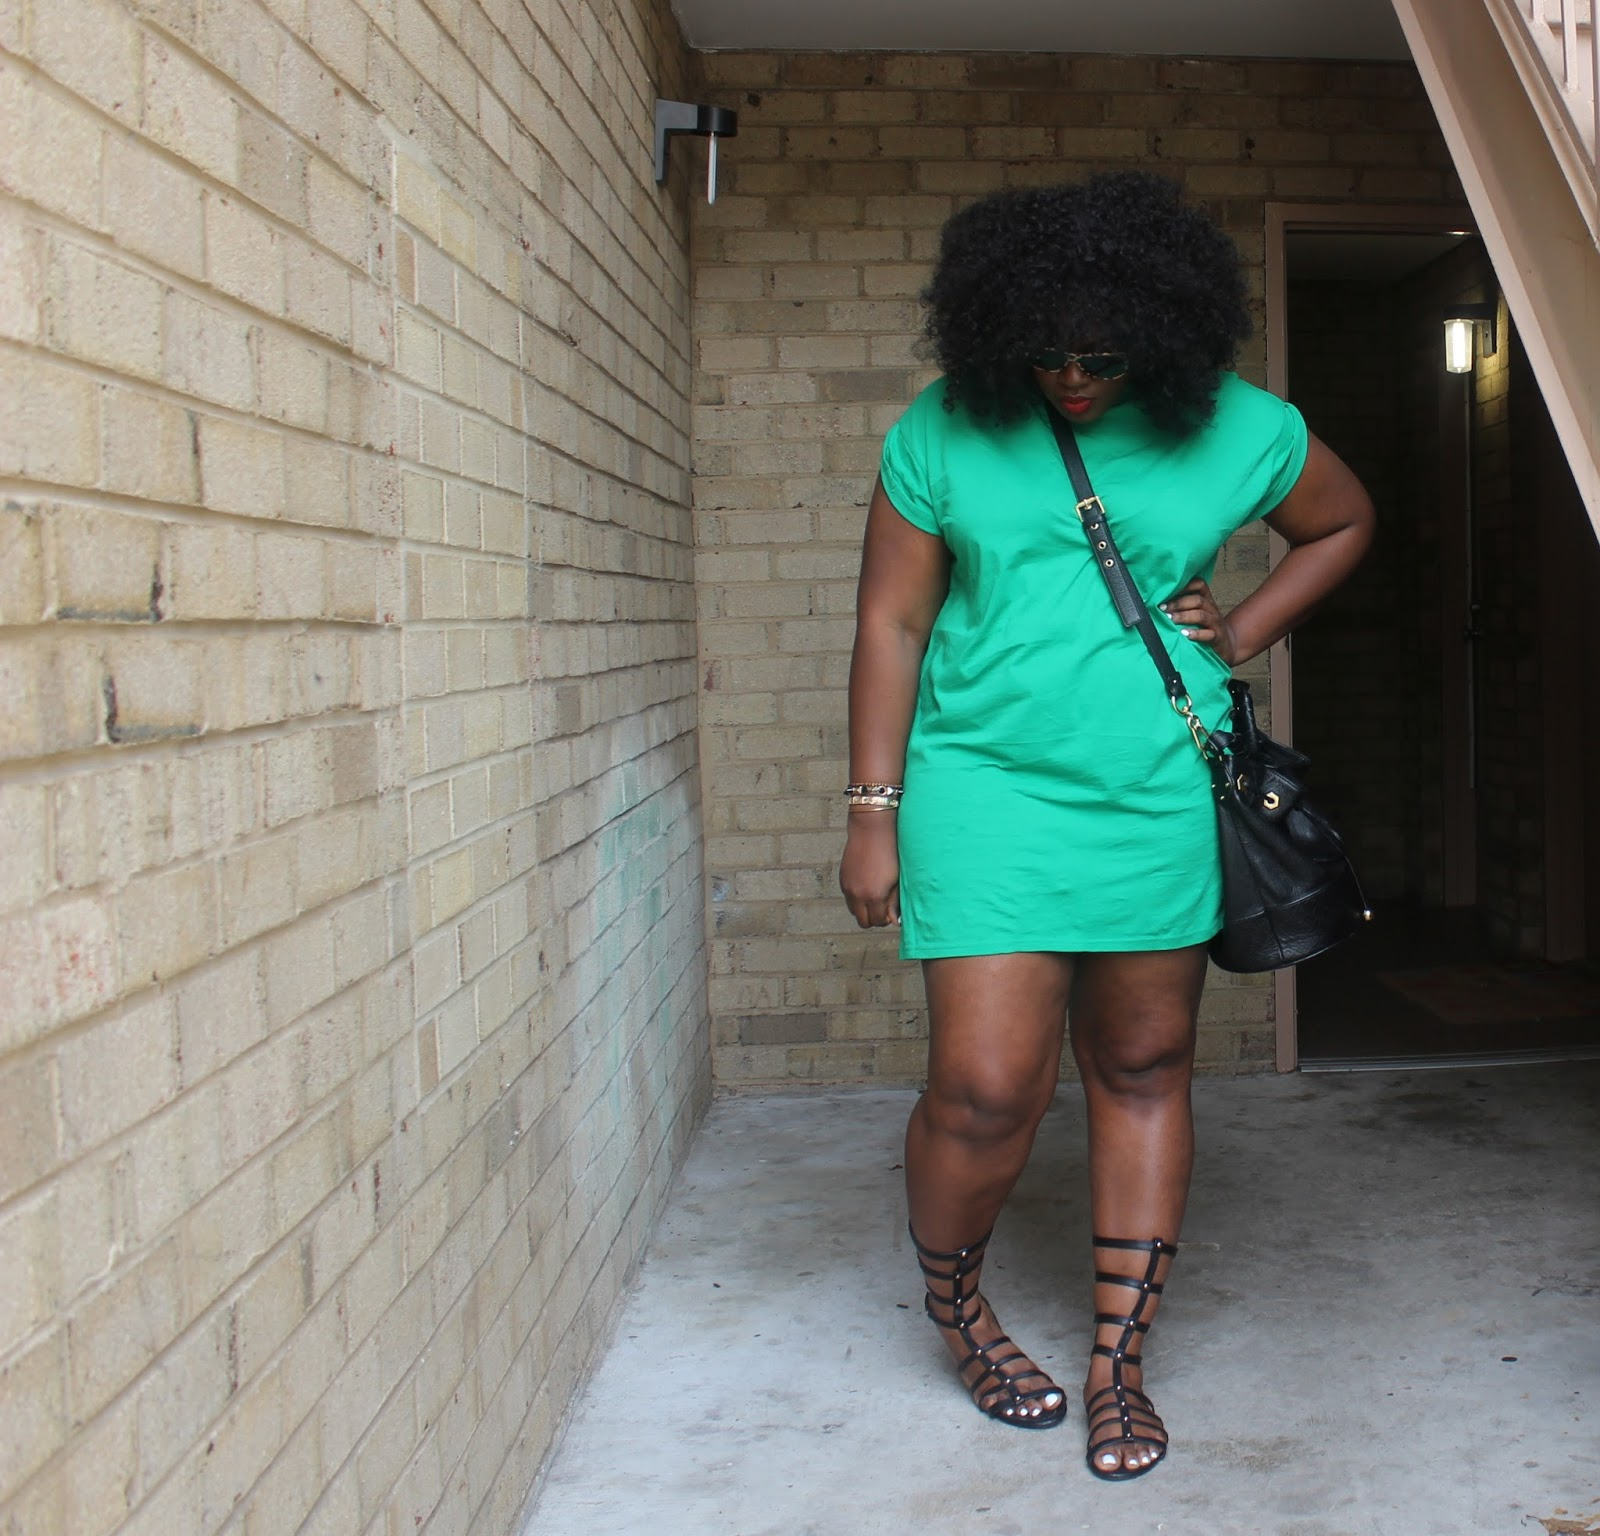 SUPPLECHIC: Boots in The Summer: Green T-shirt Dress and ...